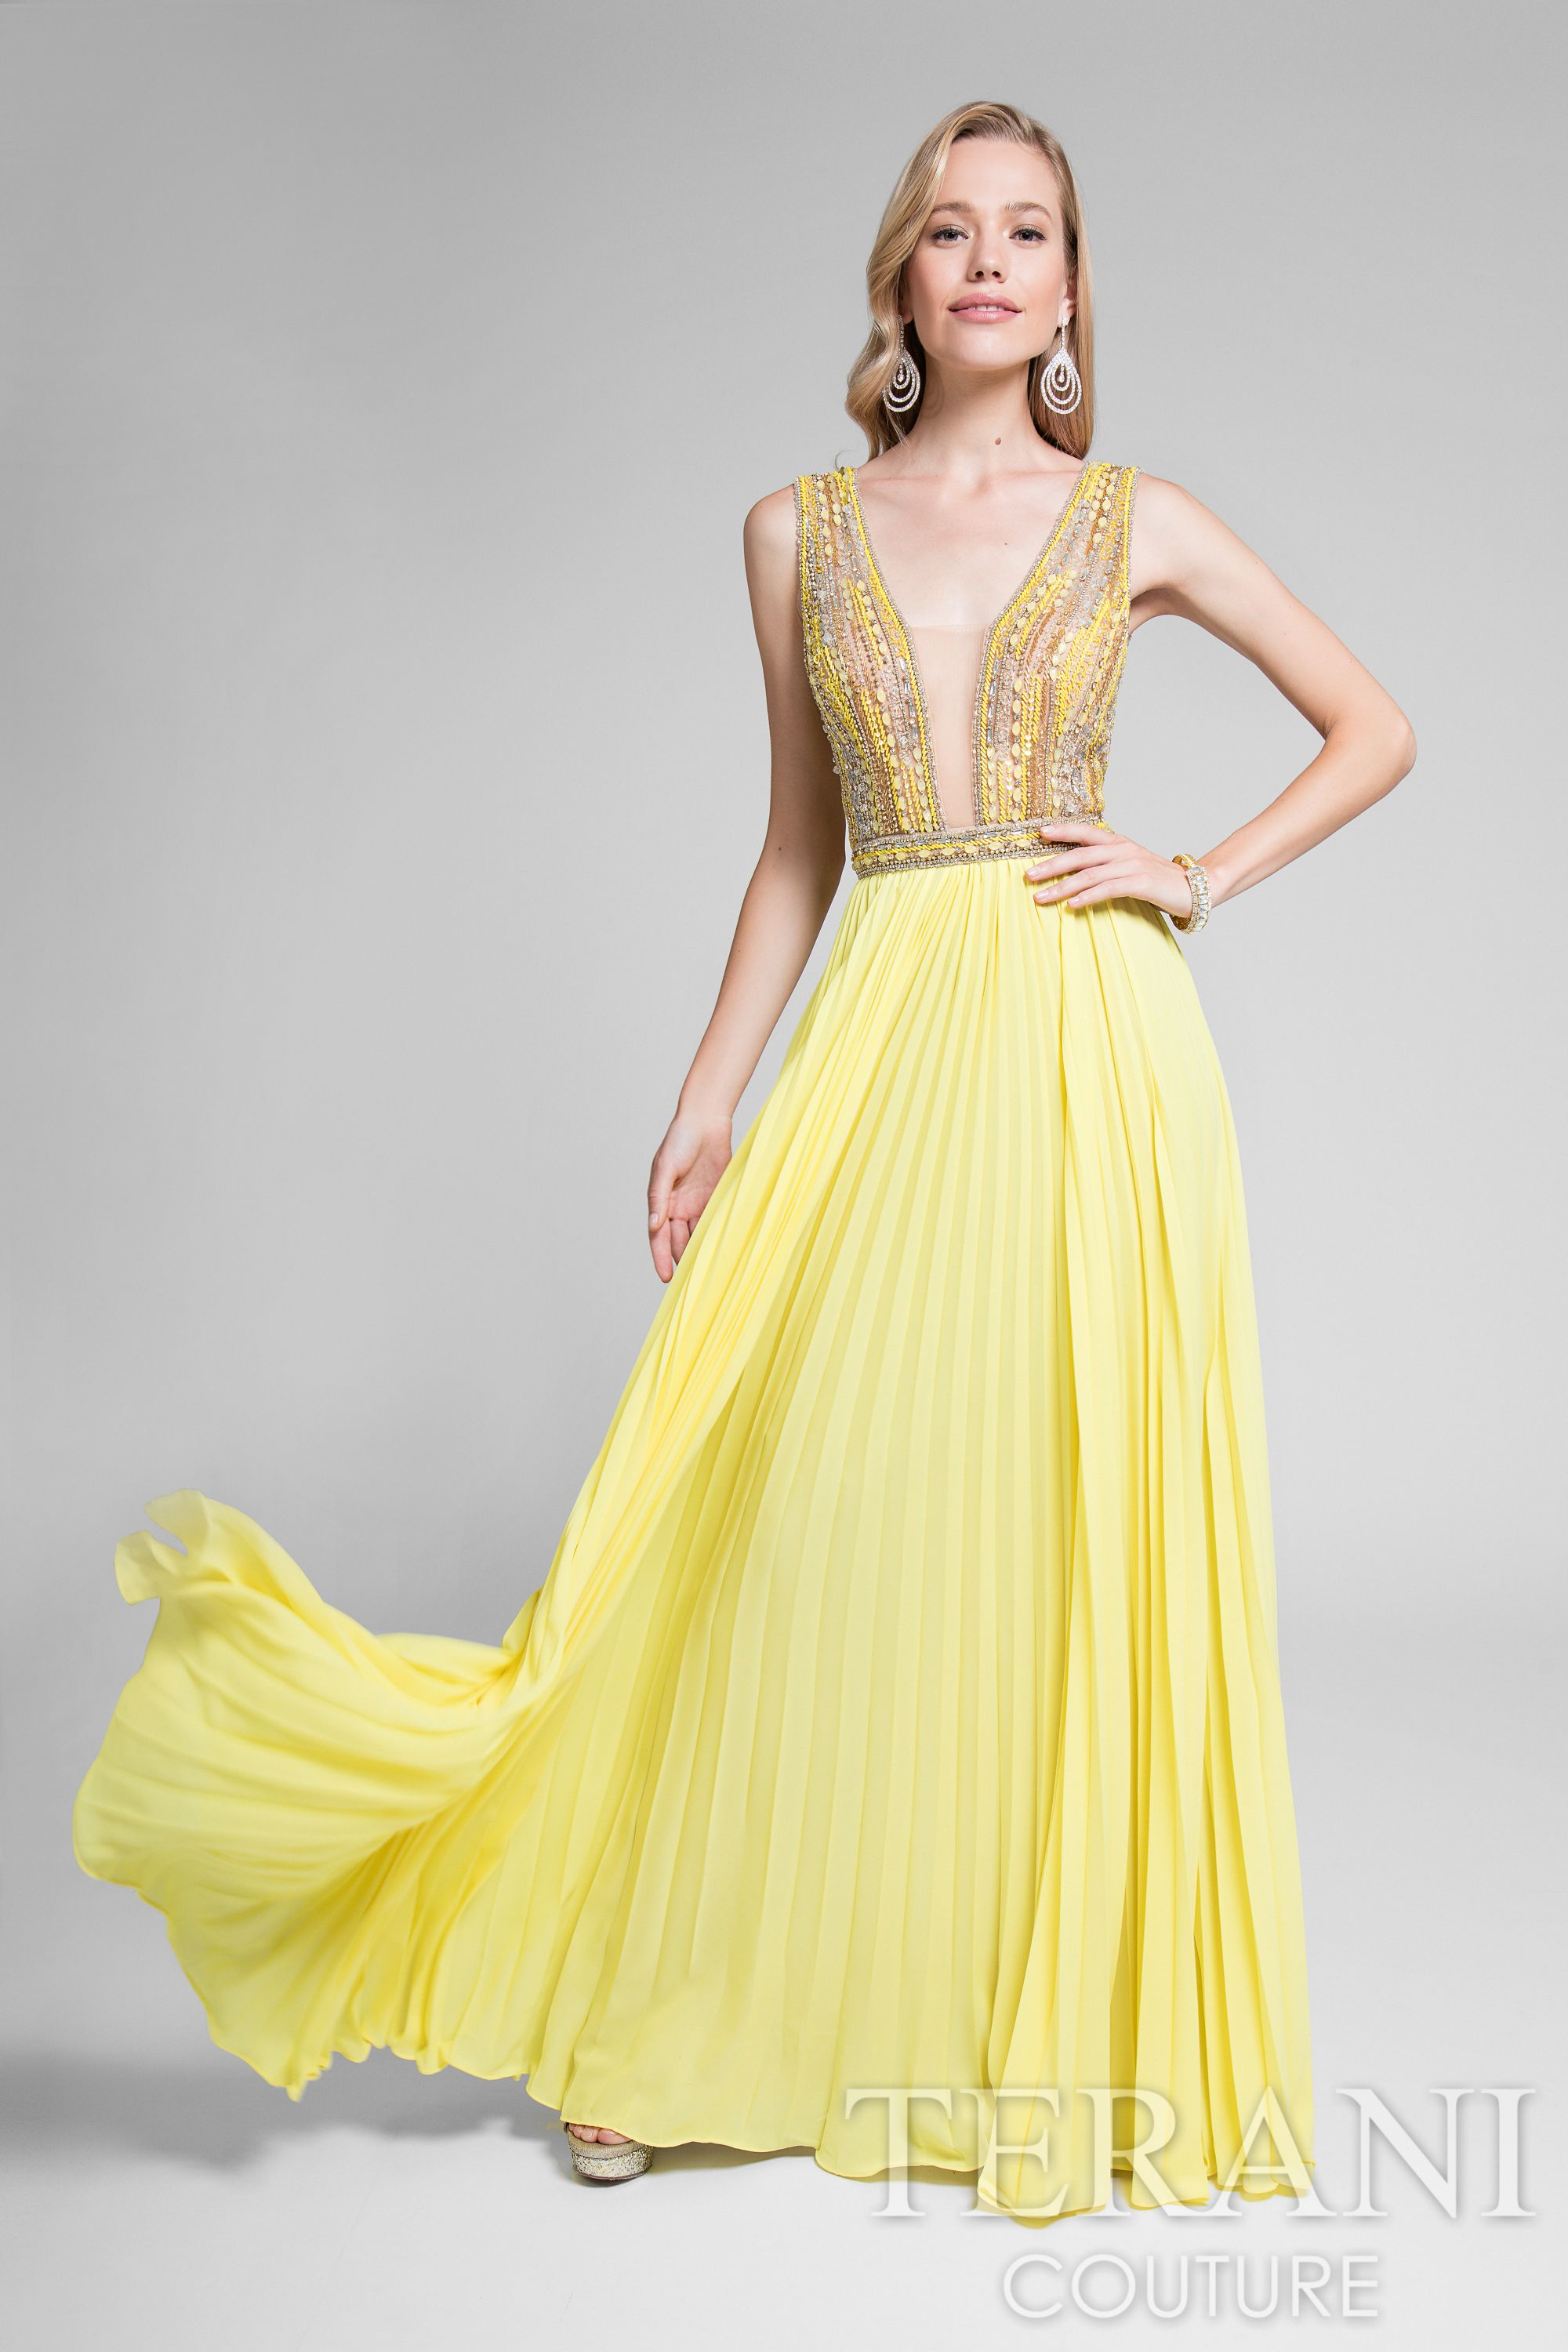 Gorgeous sleveless designer gown with plunging nude illusion